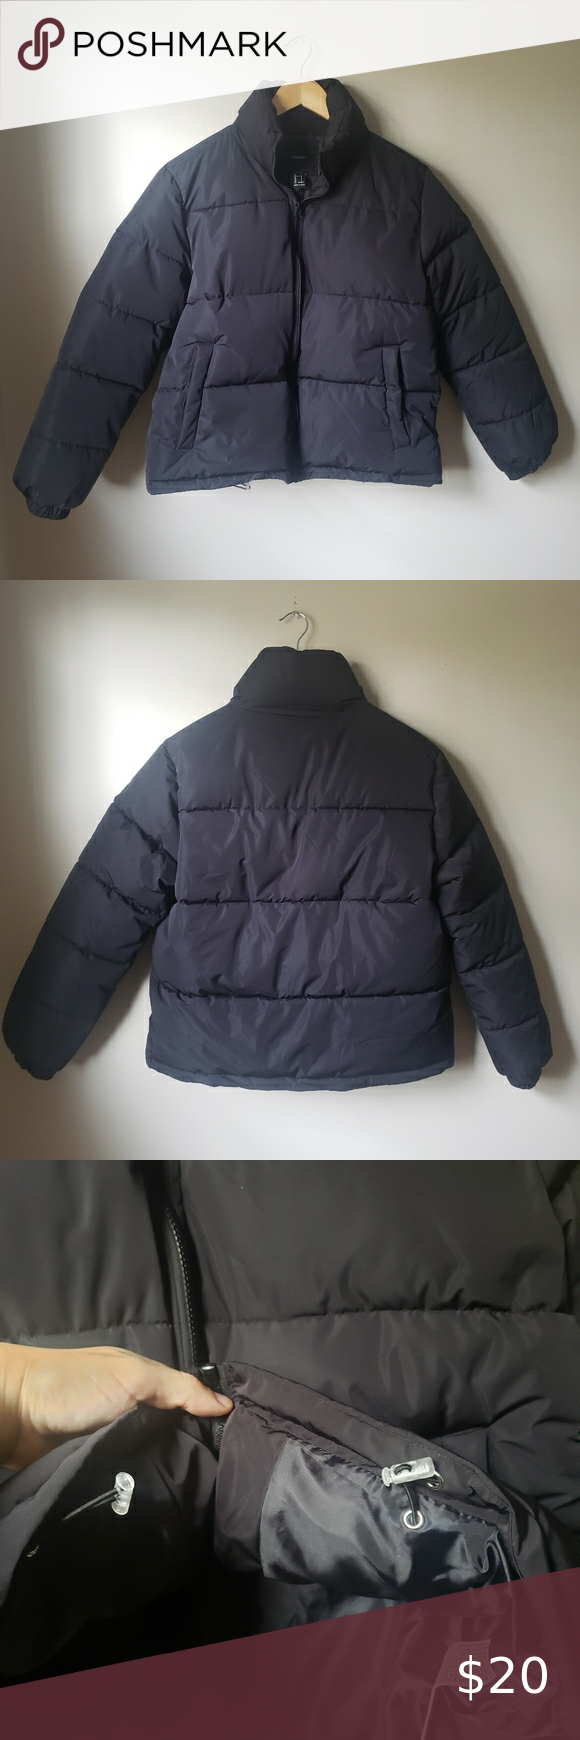 Forever 21 Black Puffer Jacket Size Small Black Puffer Jacket Black Puffer Puffer Jackets [ 1740 x 580 Pixel ]